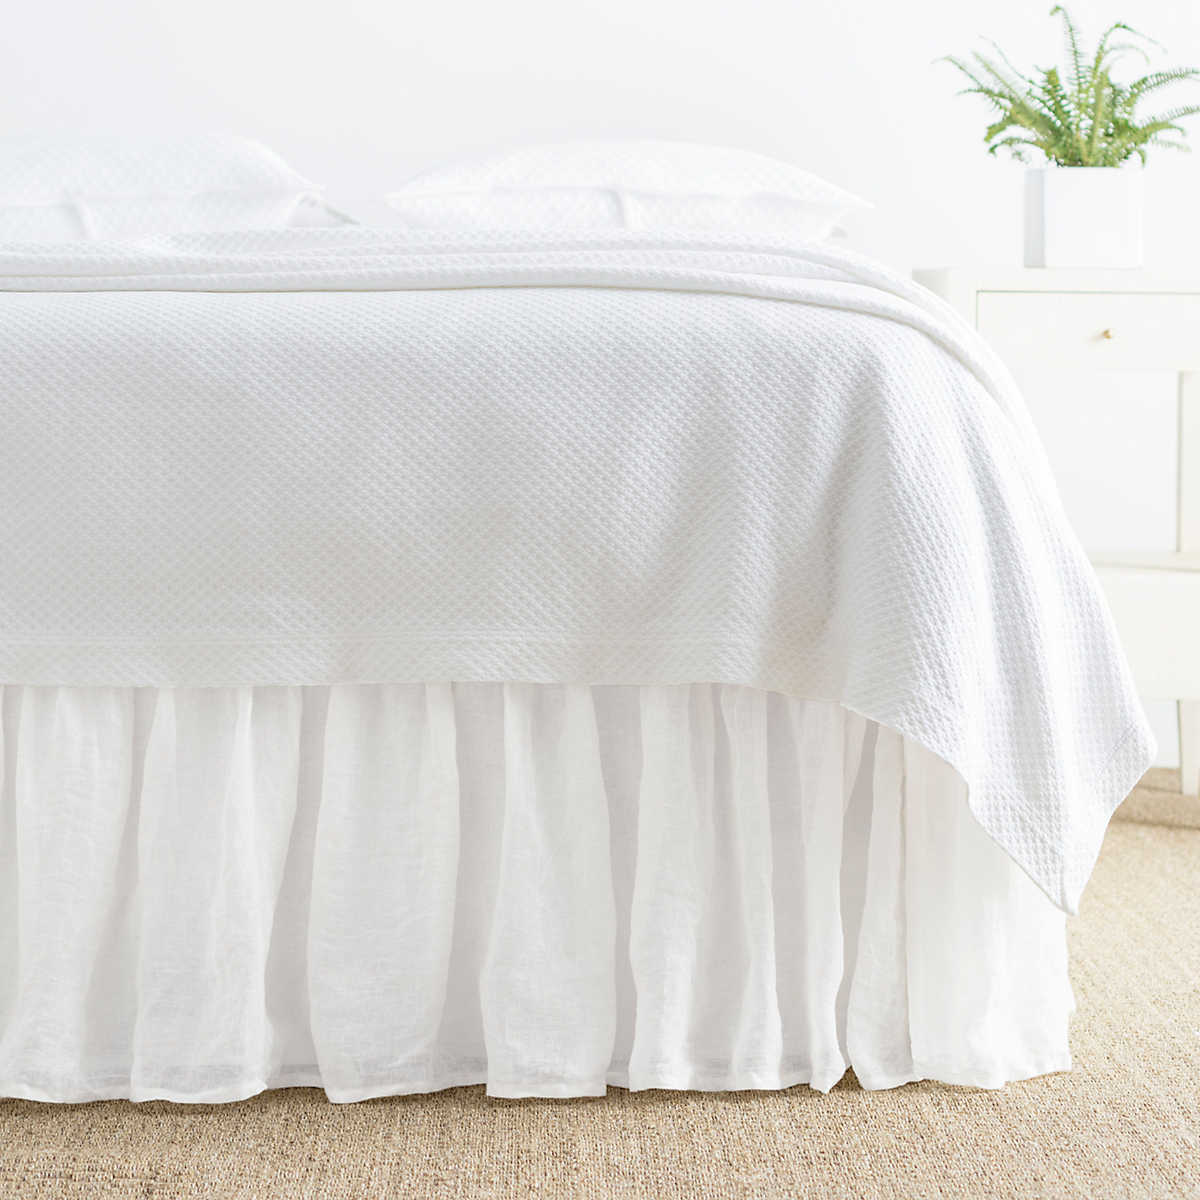 RH's Vintage-Washed Belgian Linen Bed Skirt:SAVE % DURING THE HOME FURNISHINGS EVENT. LIMITED TIME heresfilmz8.ga SHIPPINGThe finest linen dresses the bed with classic simplicity. Offering a unique blend of comfort, practicality and elegance, linen is pure luxury.